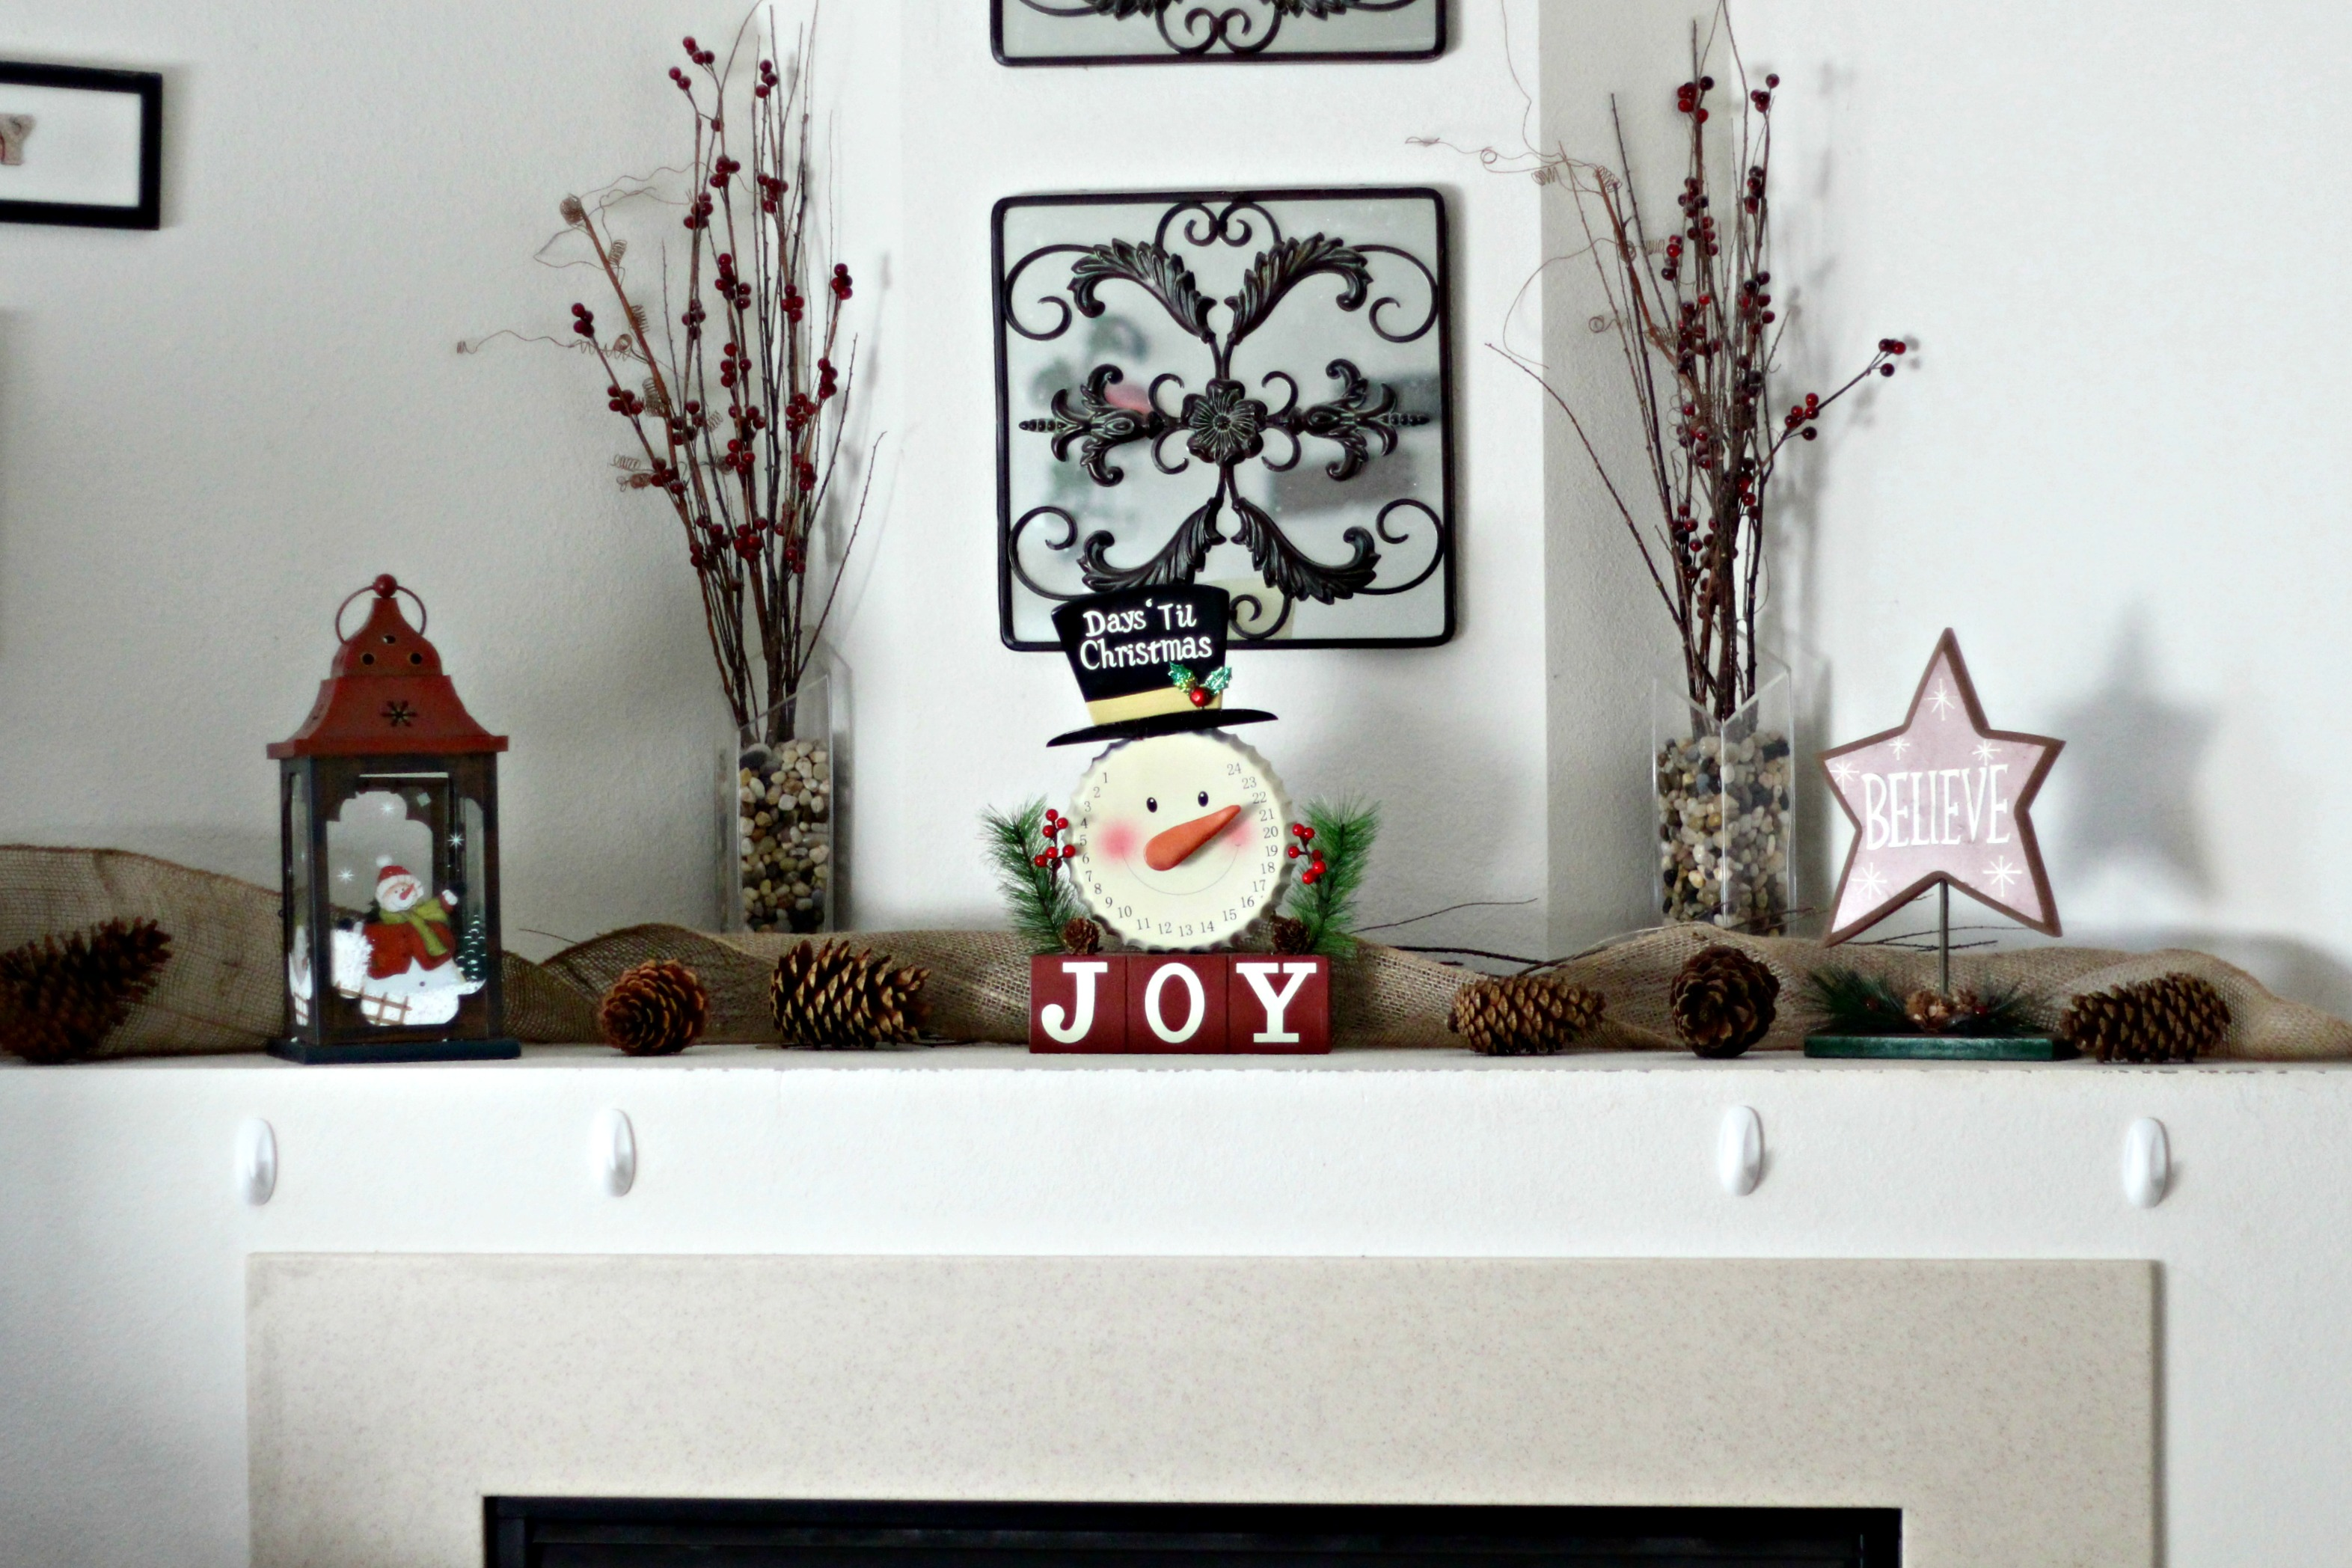 Find the Perfect Holiday decor at a great price at At Home. Check out some of the fantastic themed finds I found, plus how I incorporated some of them into my own holiday decor. #ad